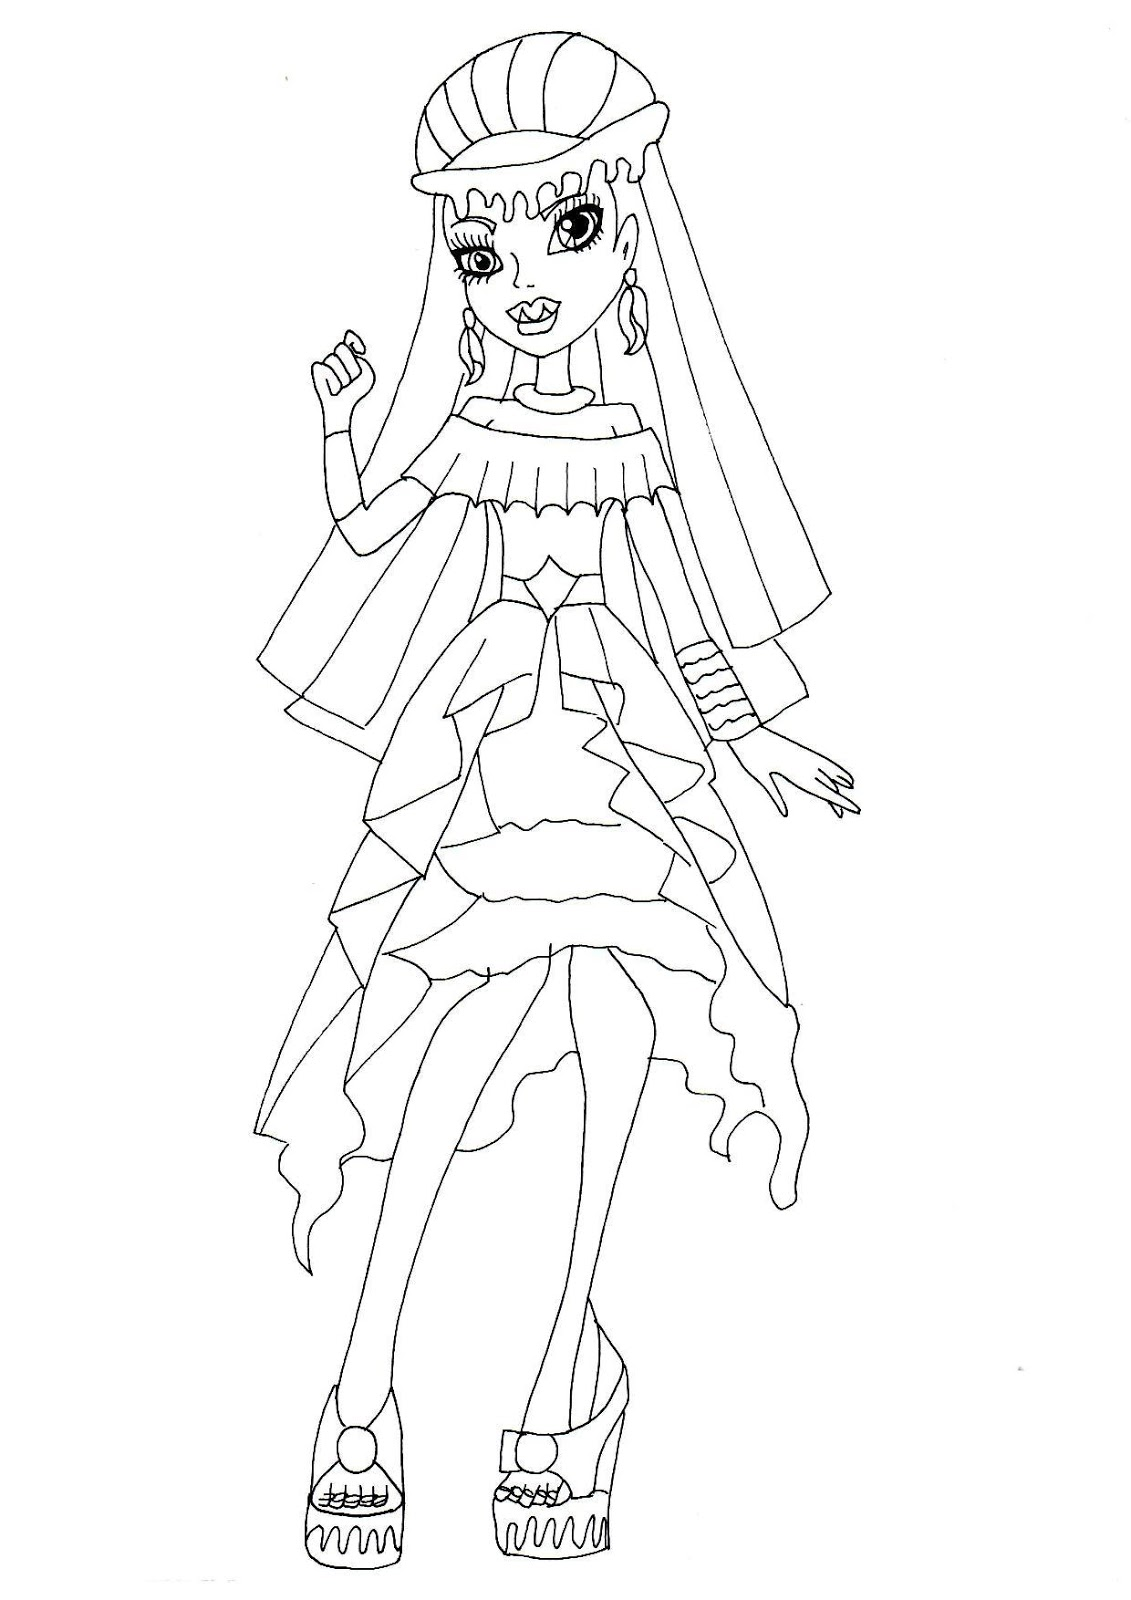 Monster High 13 Wishes Coloring Pages At Getcolorings